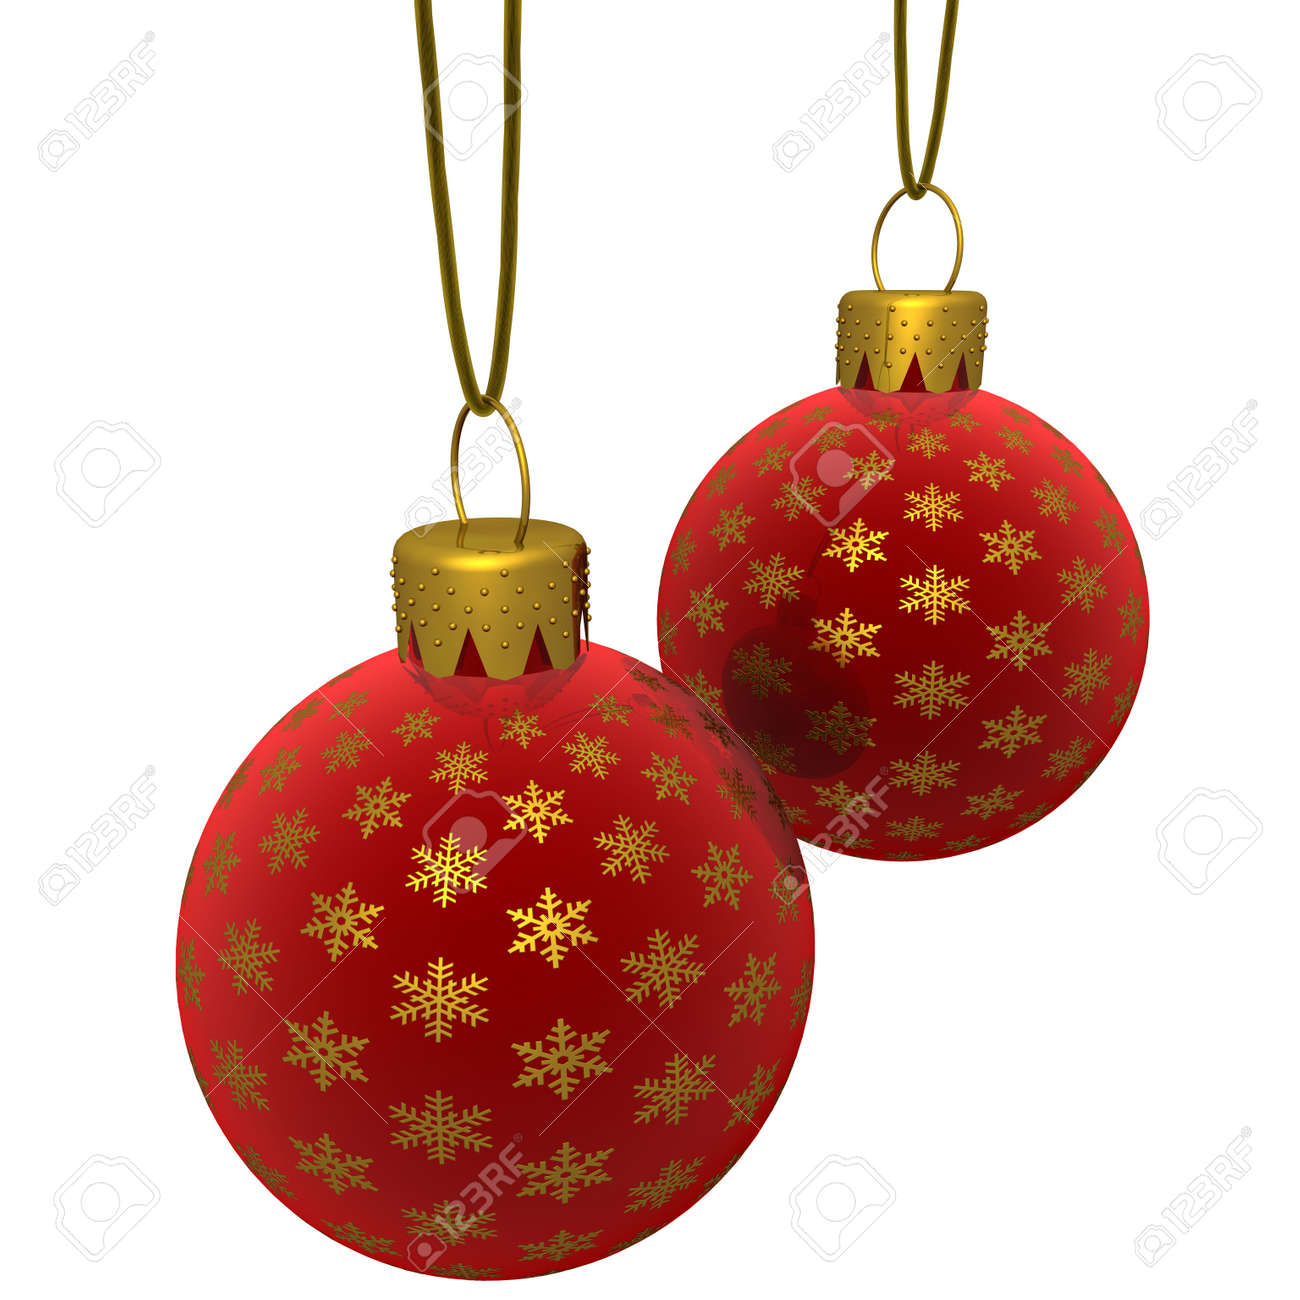 Red glass christmas ornaments - 3d Rendering Of A Hanging Red Glass Christmas Ornaments With Golden Snowflakes Isolated On A White